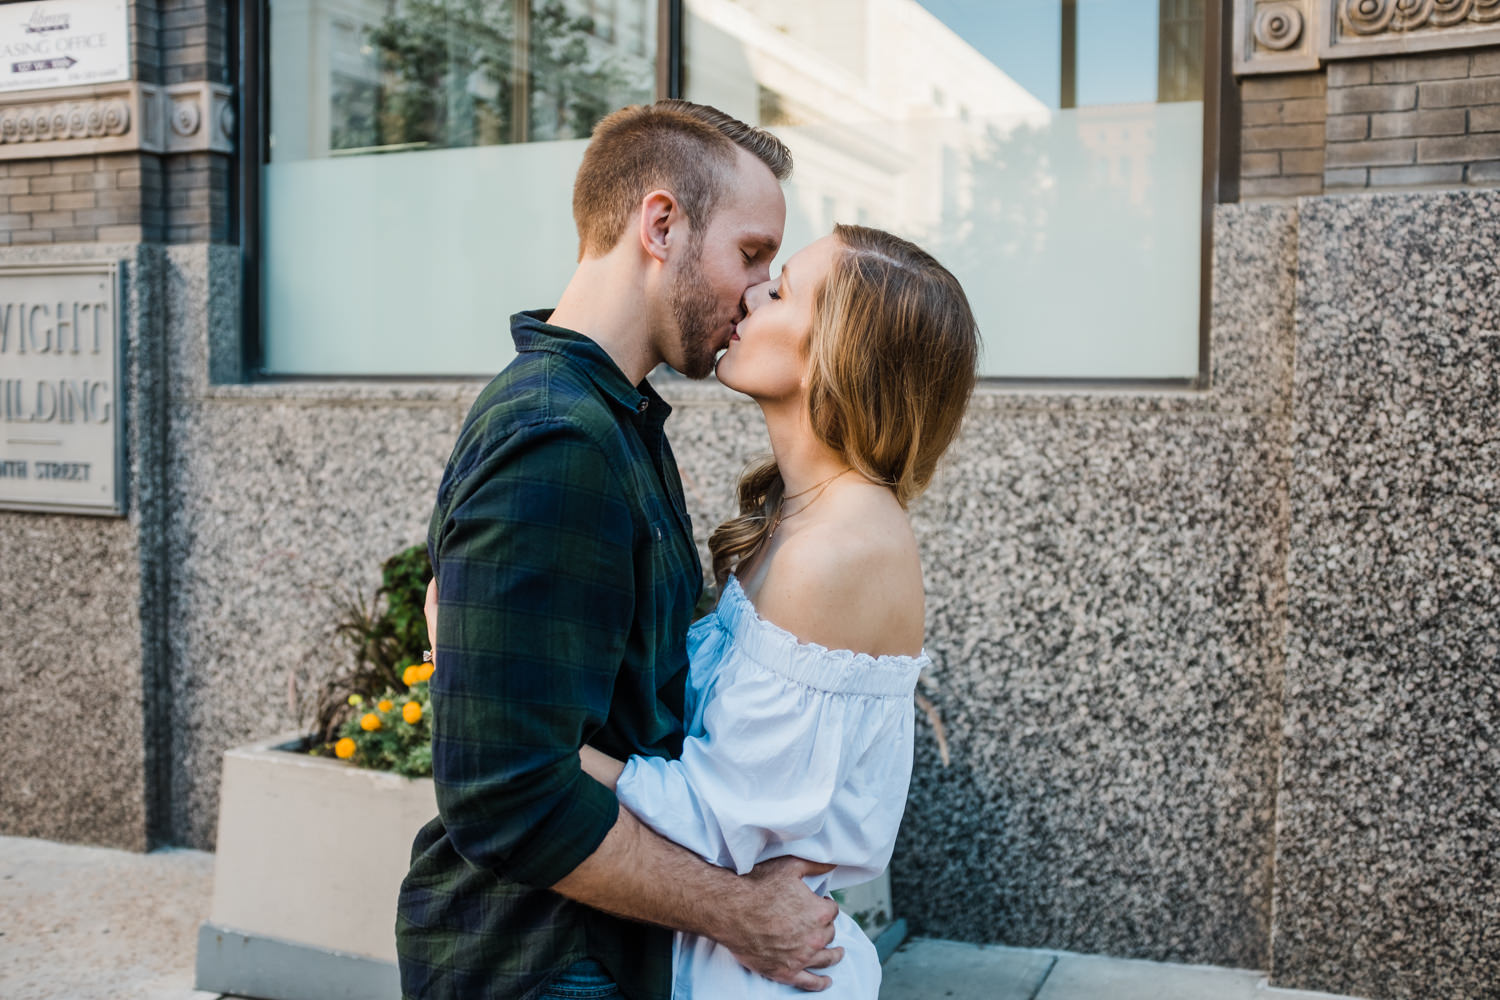 Kansas City Engagement Photographer-Neal Dieker-Kansas City, Kansas-Kansas City, Kansas-Neal Dieker Photography-133.jpg